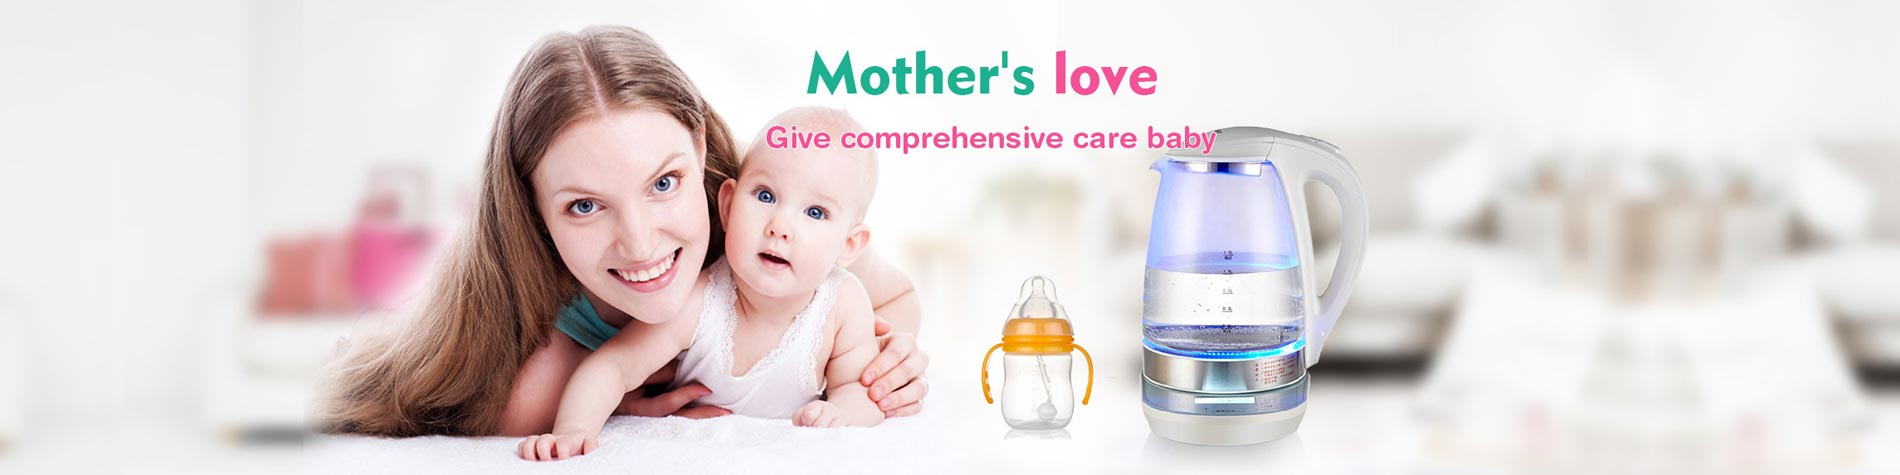 Fastest - Baby & Kids - Main Area - Mother Love